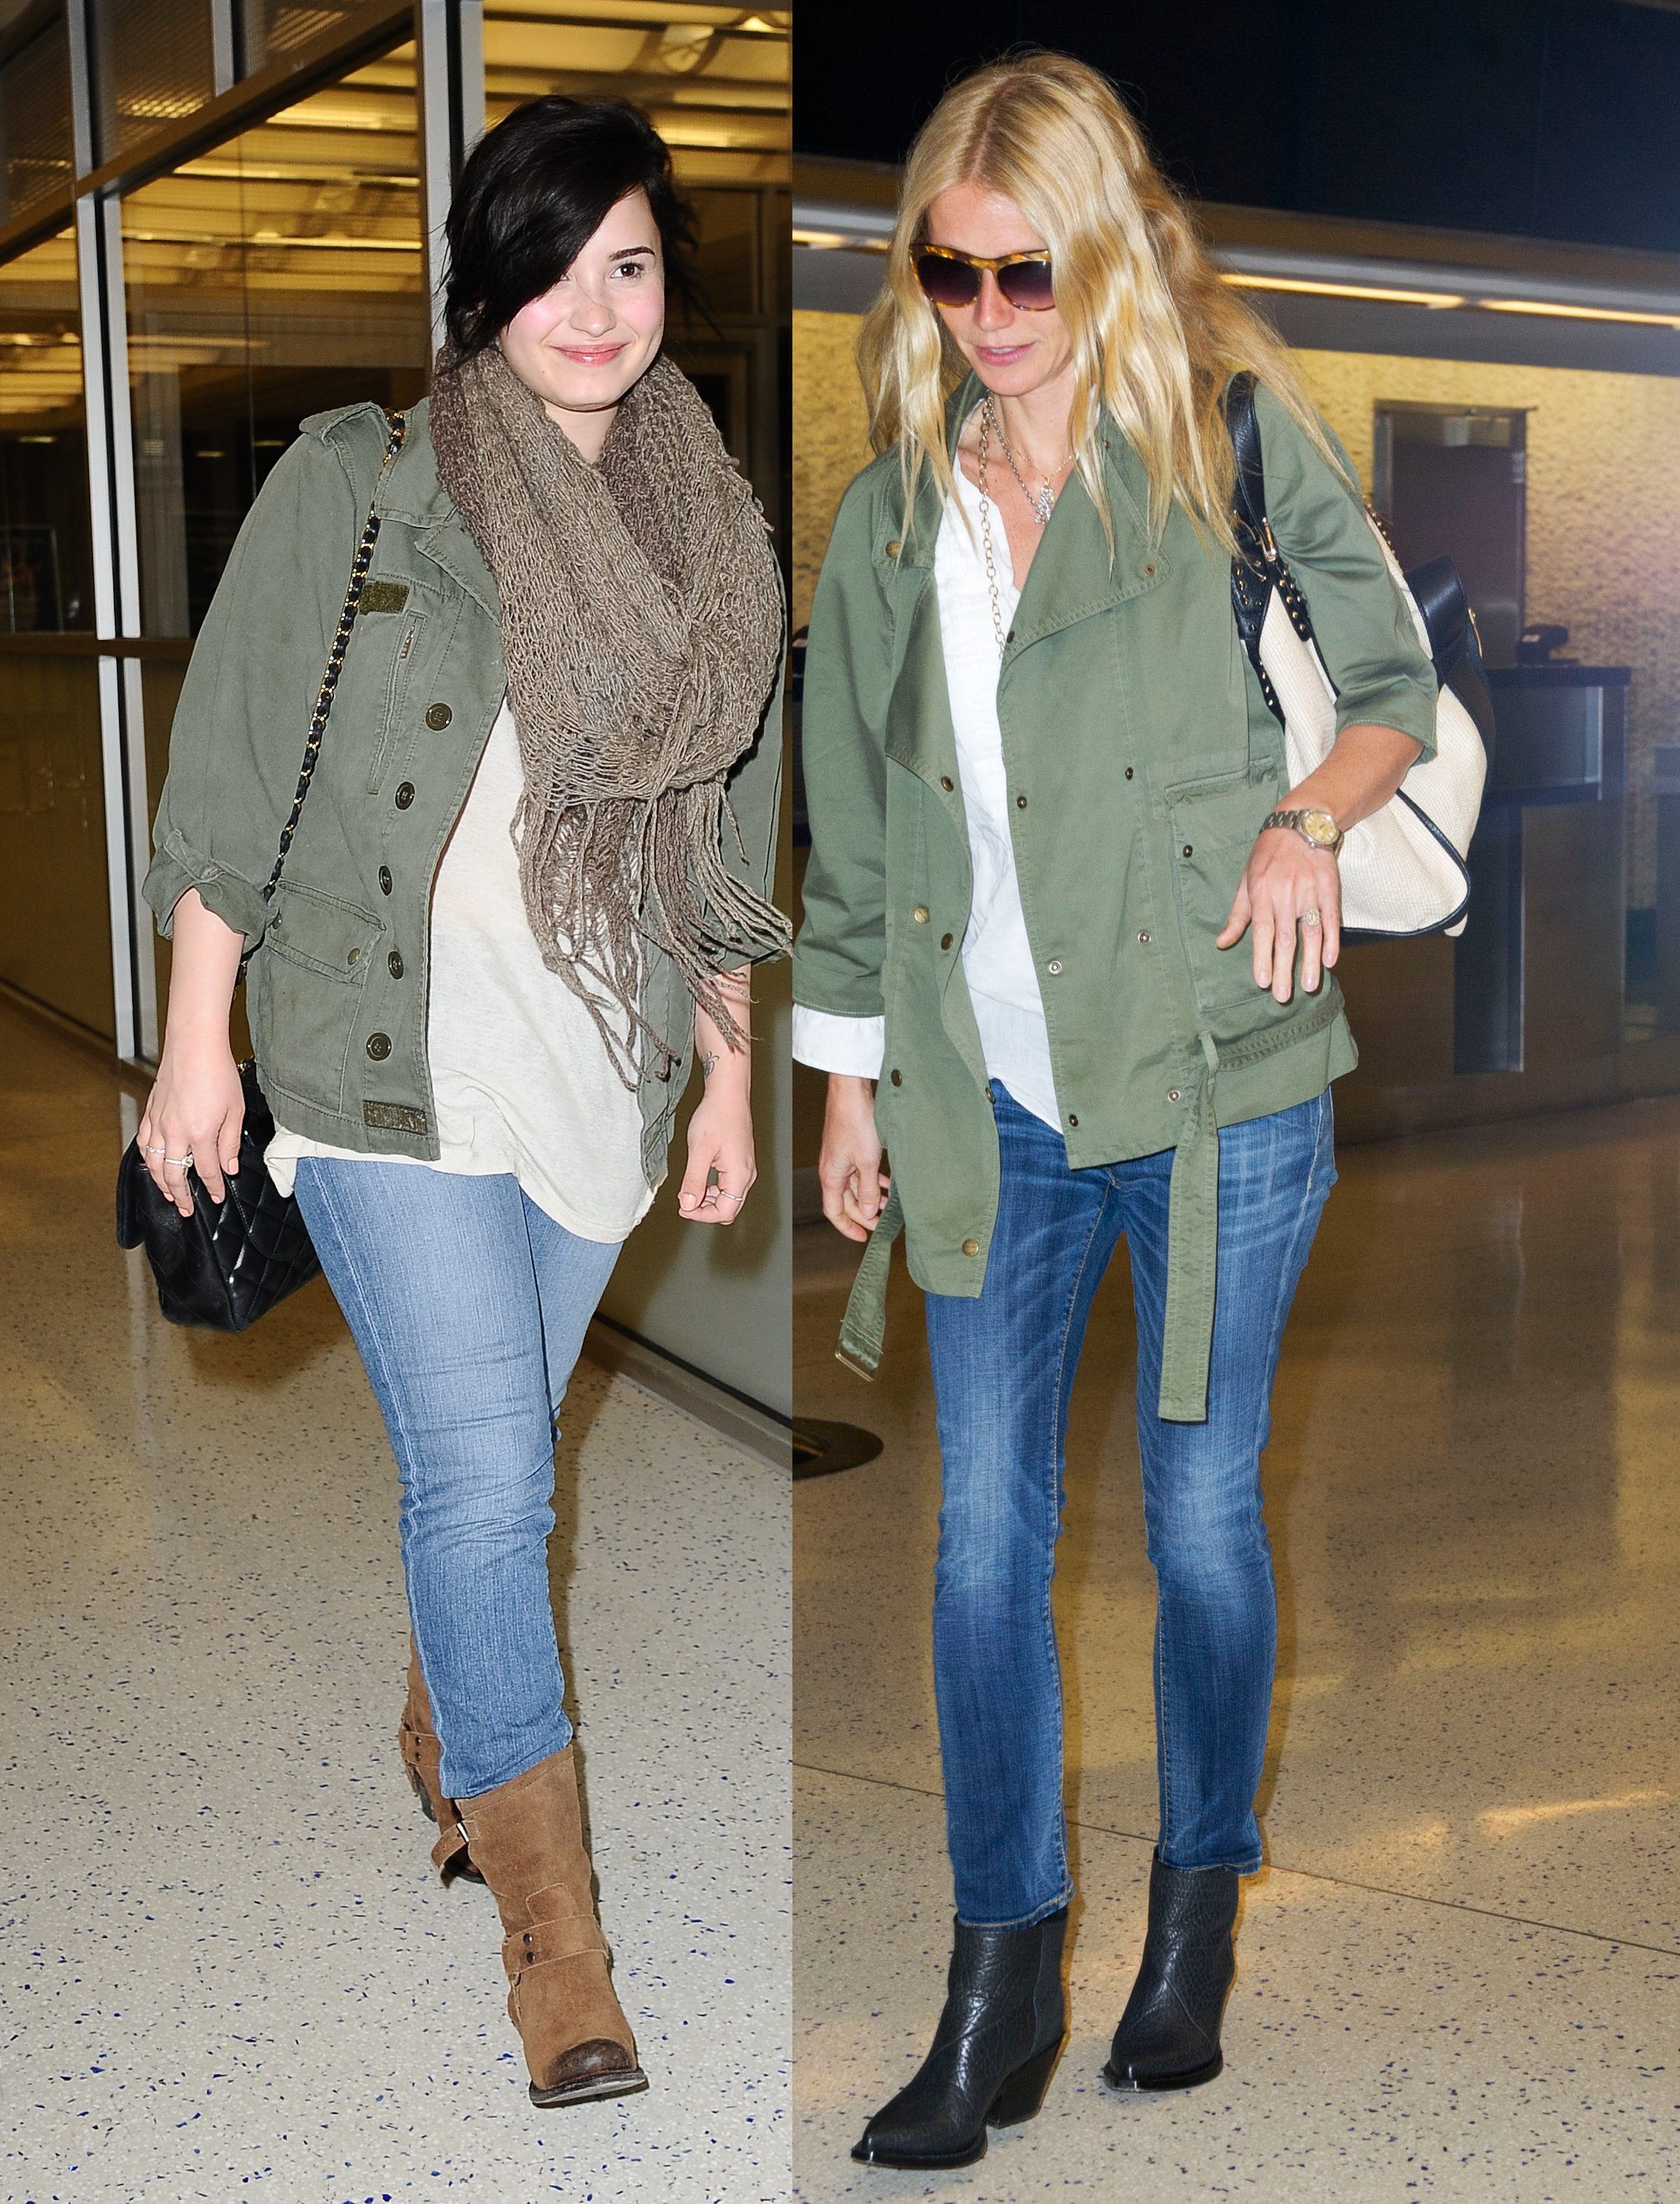 gwyneth paltrow demi lovato matching outfits airport twitter army jackets